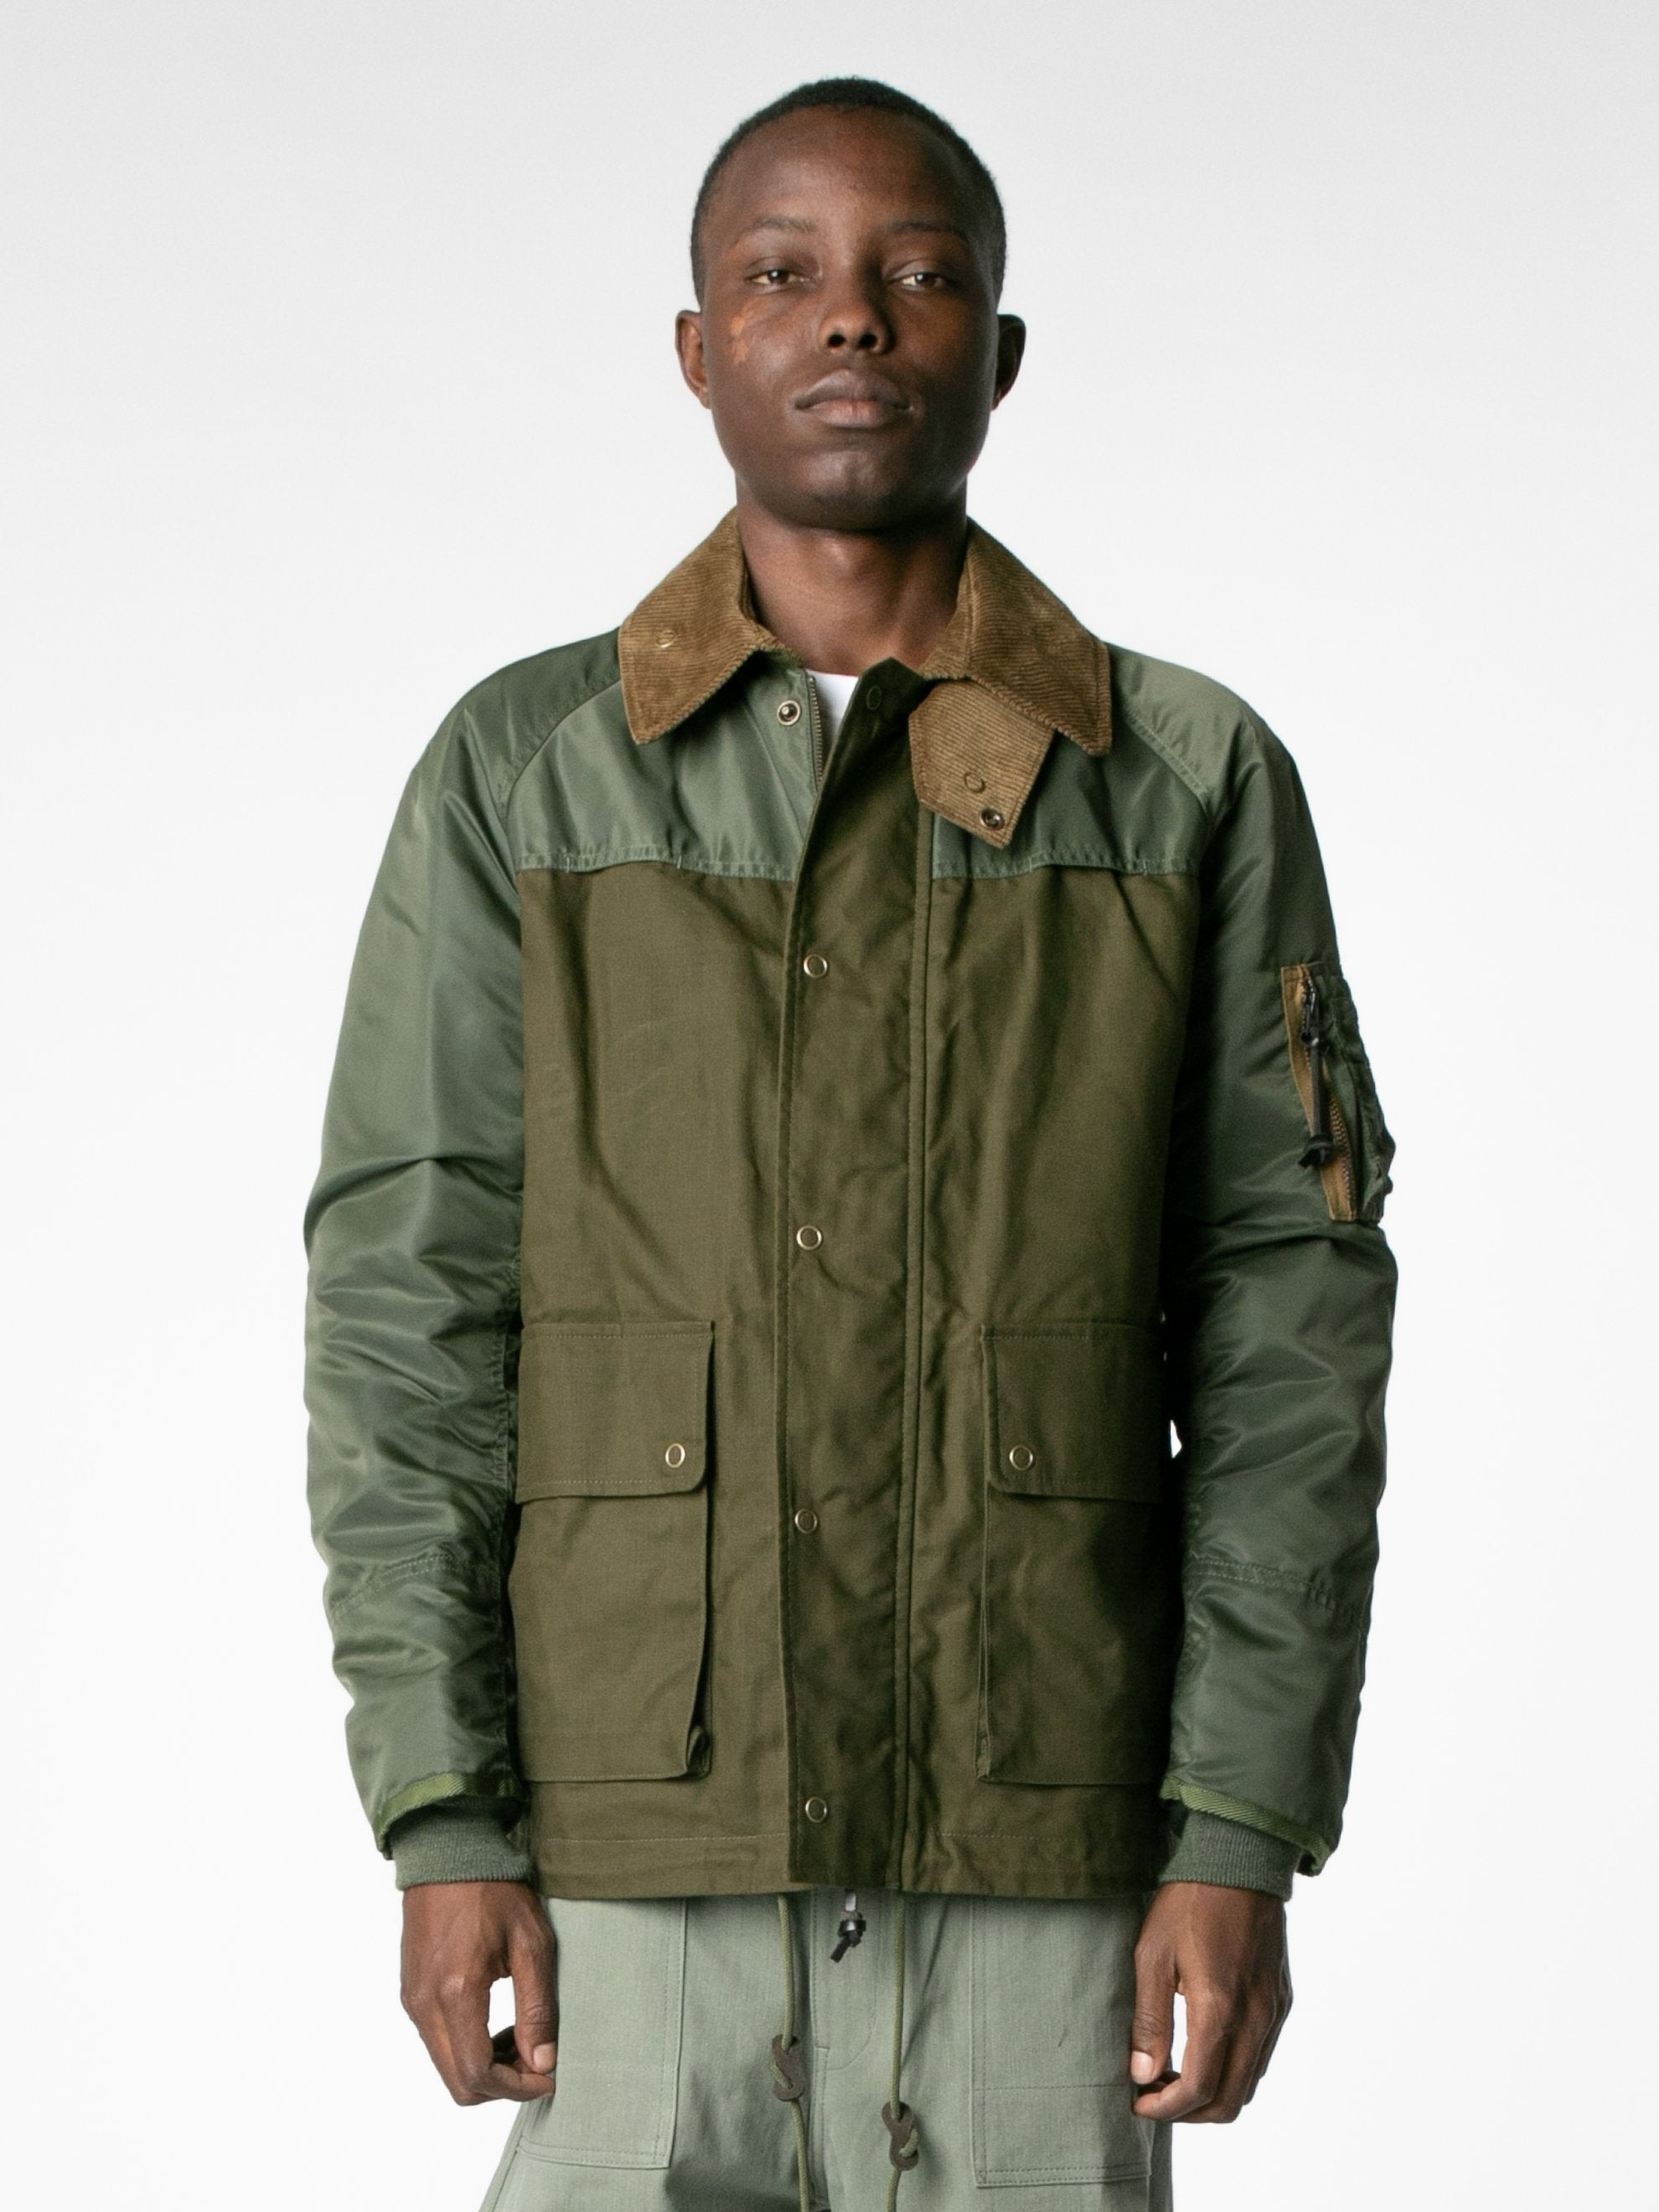 Brown / Olive Hybrid MA-1 Field Coat 2